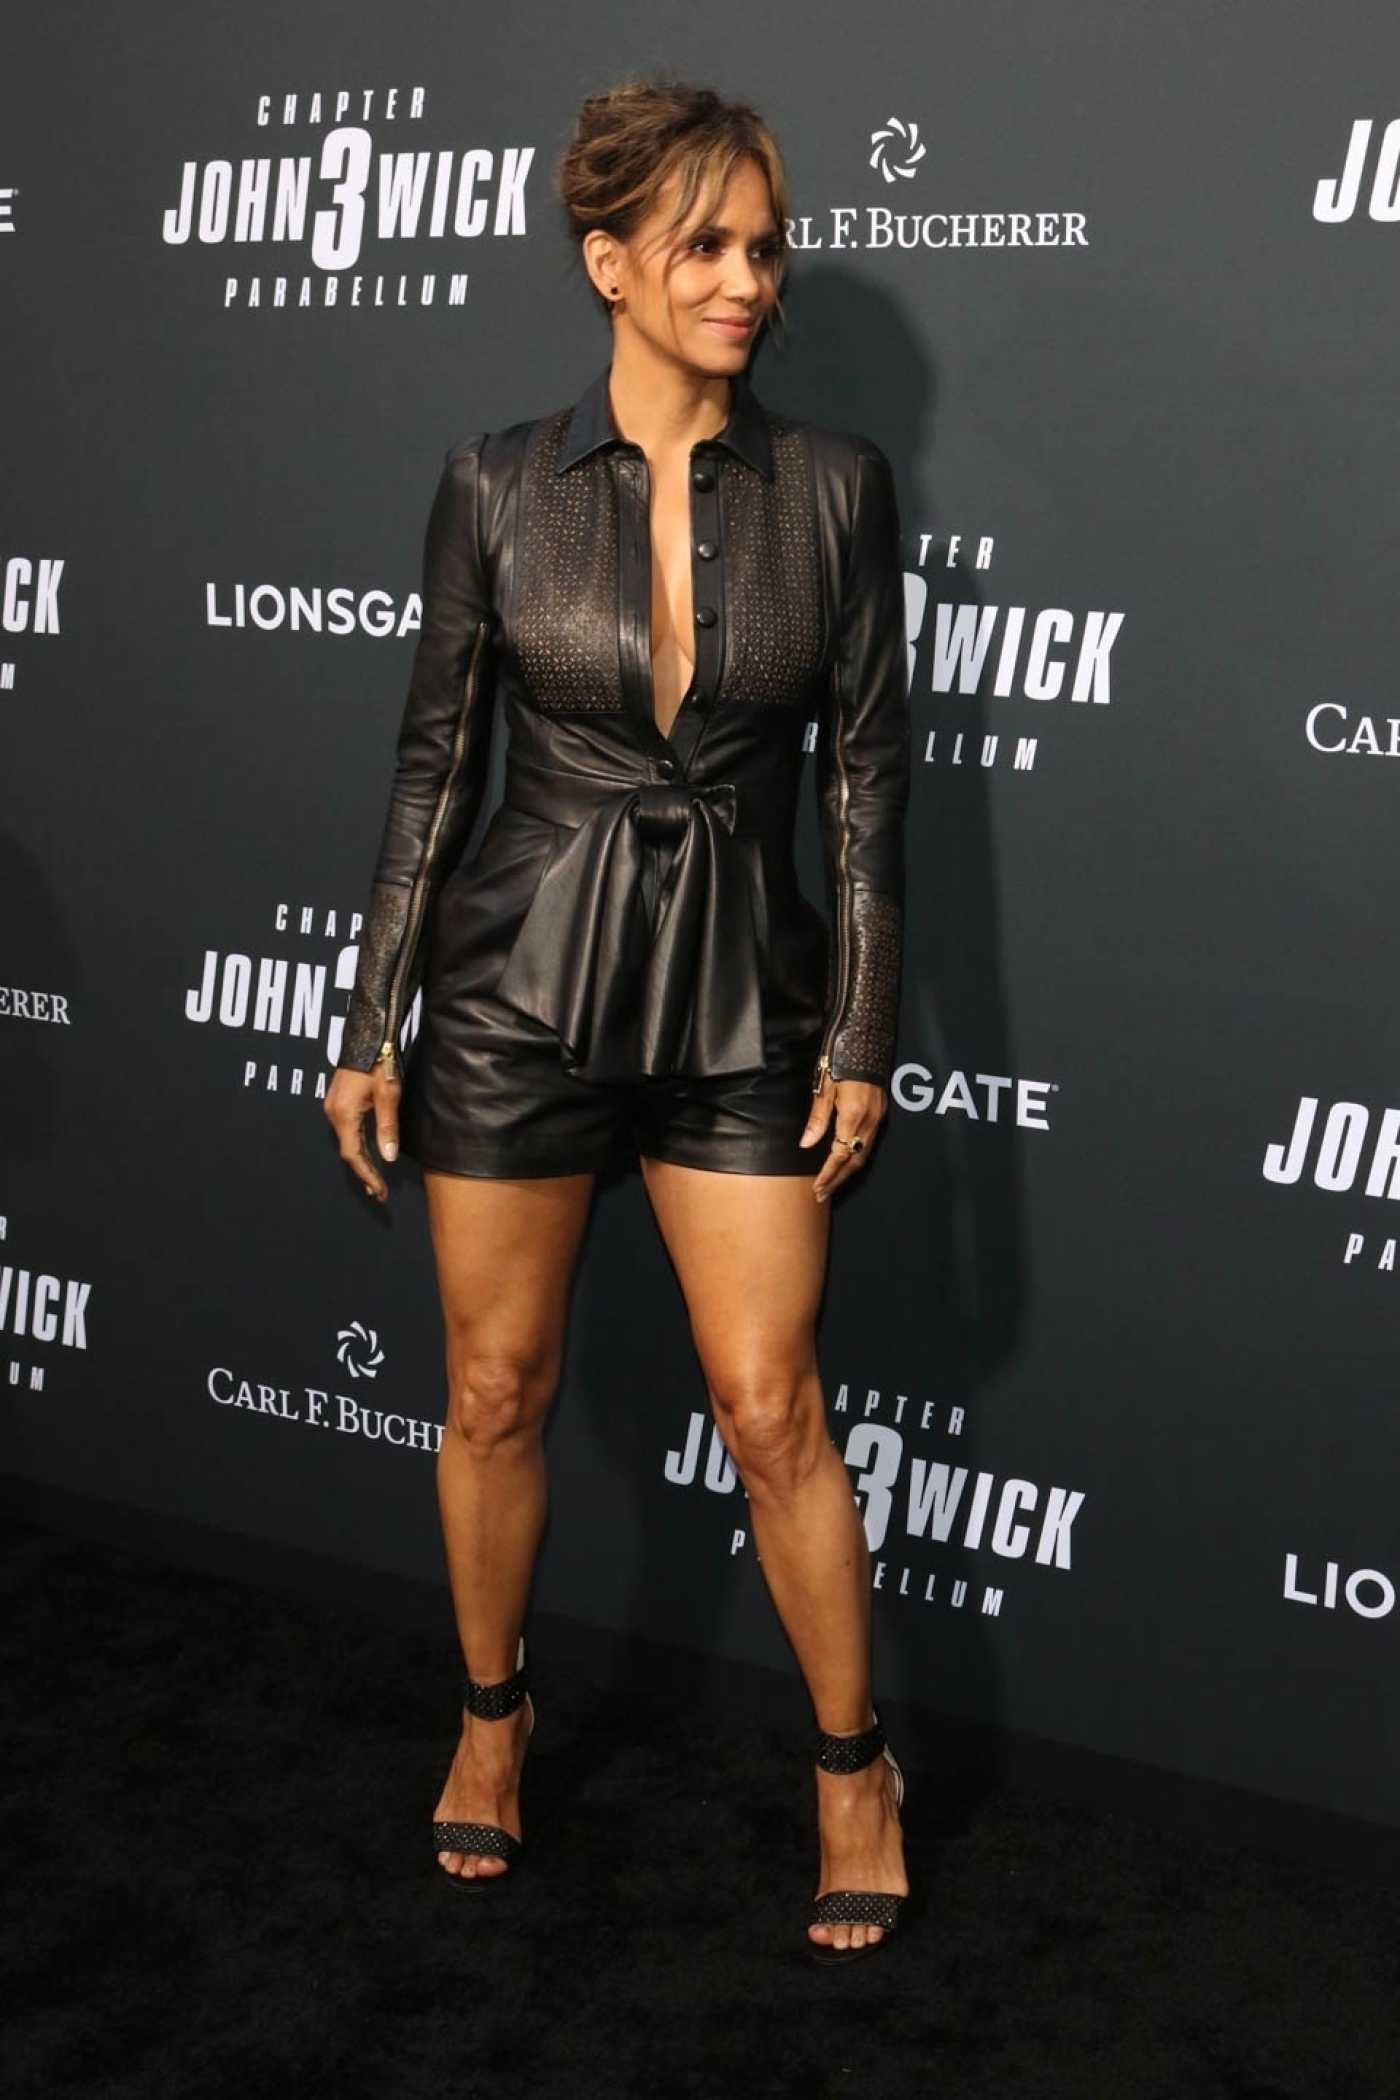 Halle Berry Attends the John Wick: Chapter 3 - Parabellum Premiere at TCL Chinese Theatre in Hollywood 05/15/2019